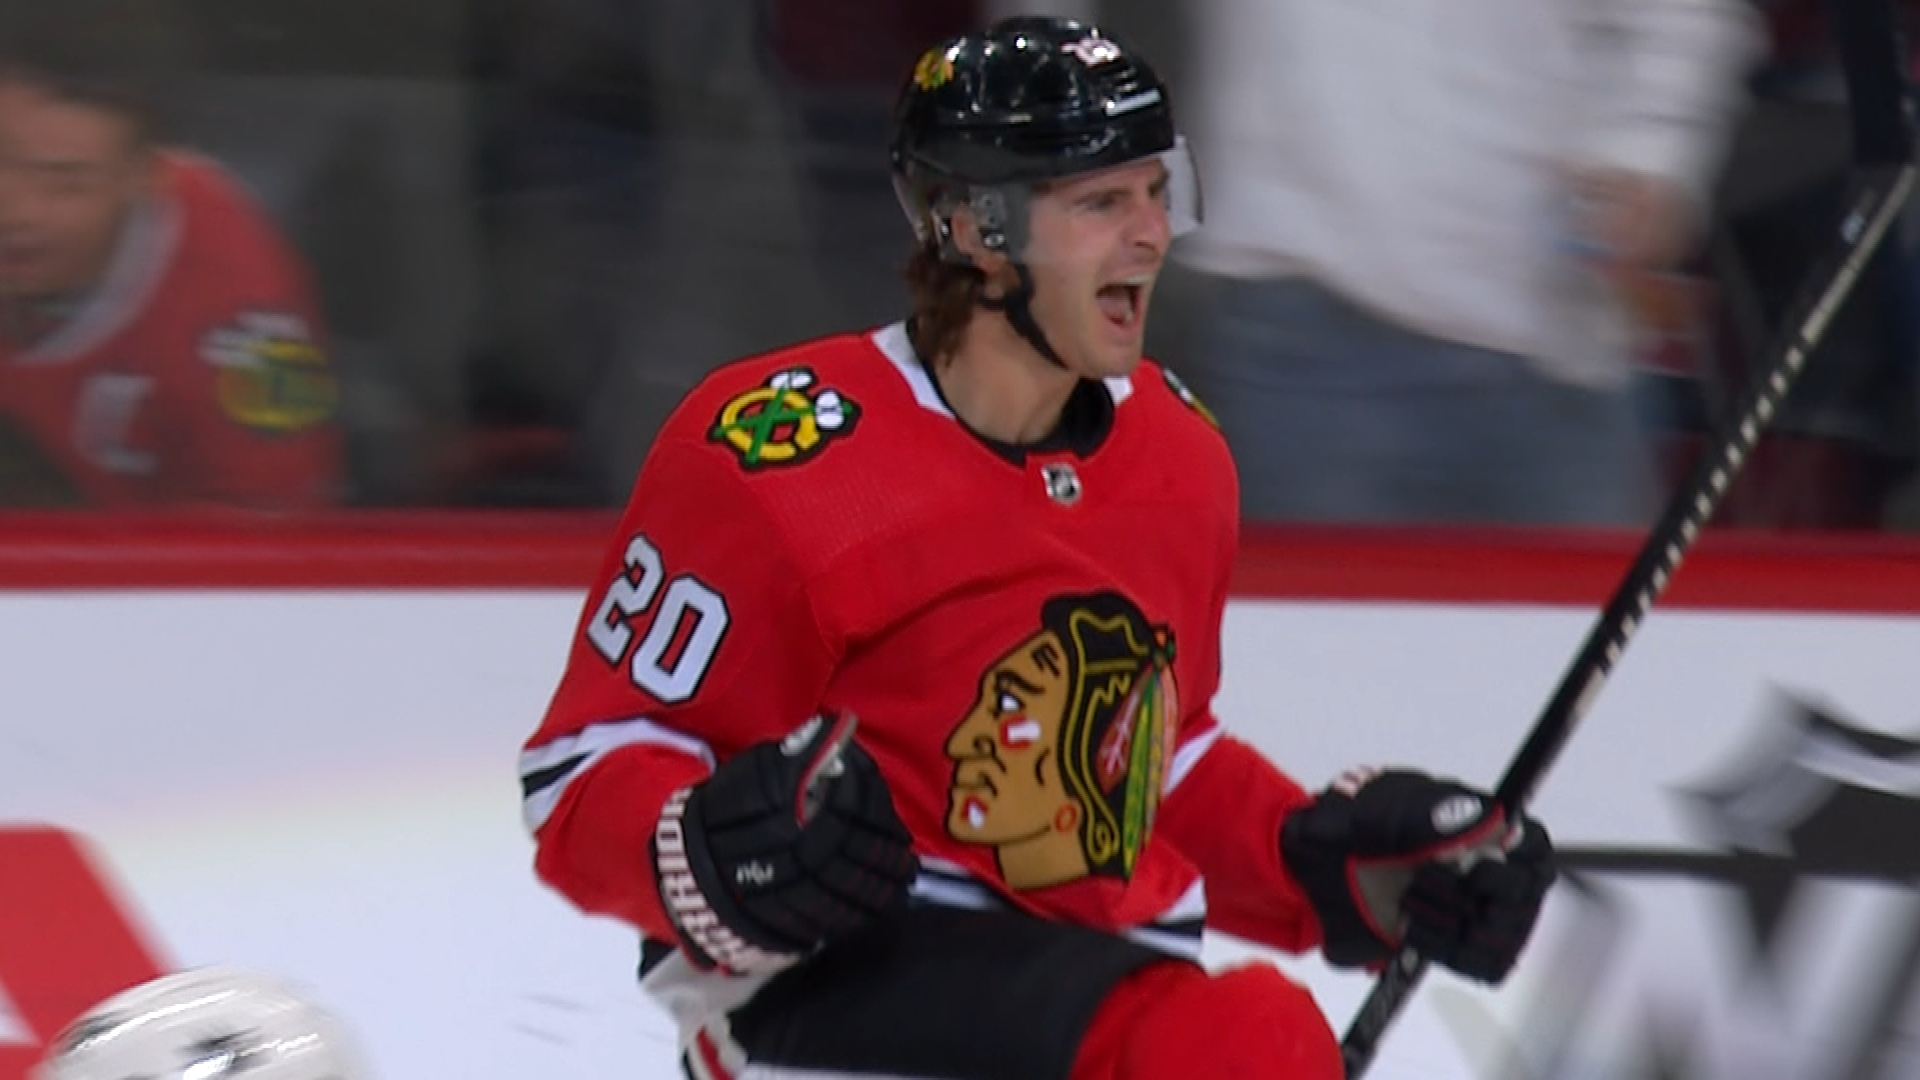 Patrick Kane, Brandon Saad score quickly to give Blackhawks lead vs. Sharks